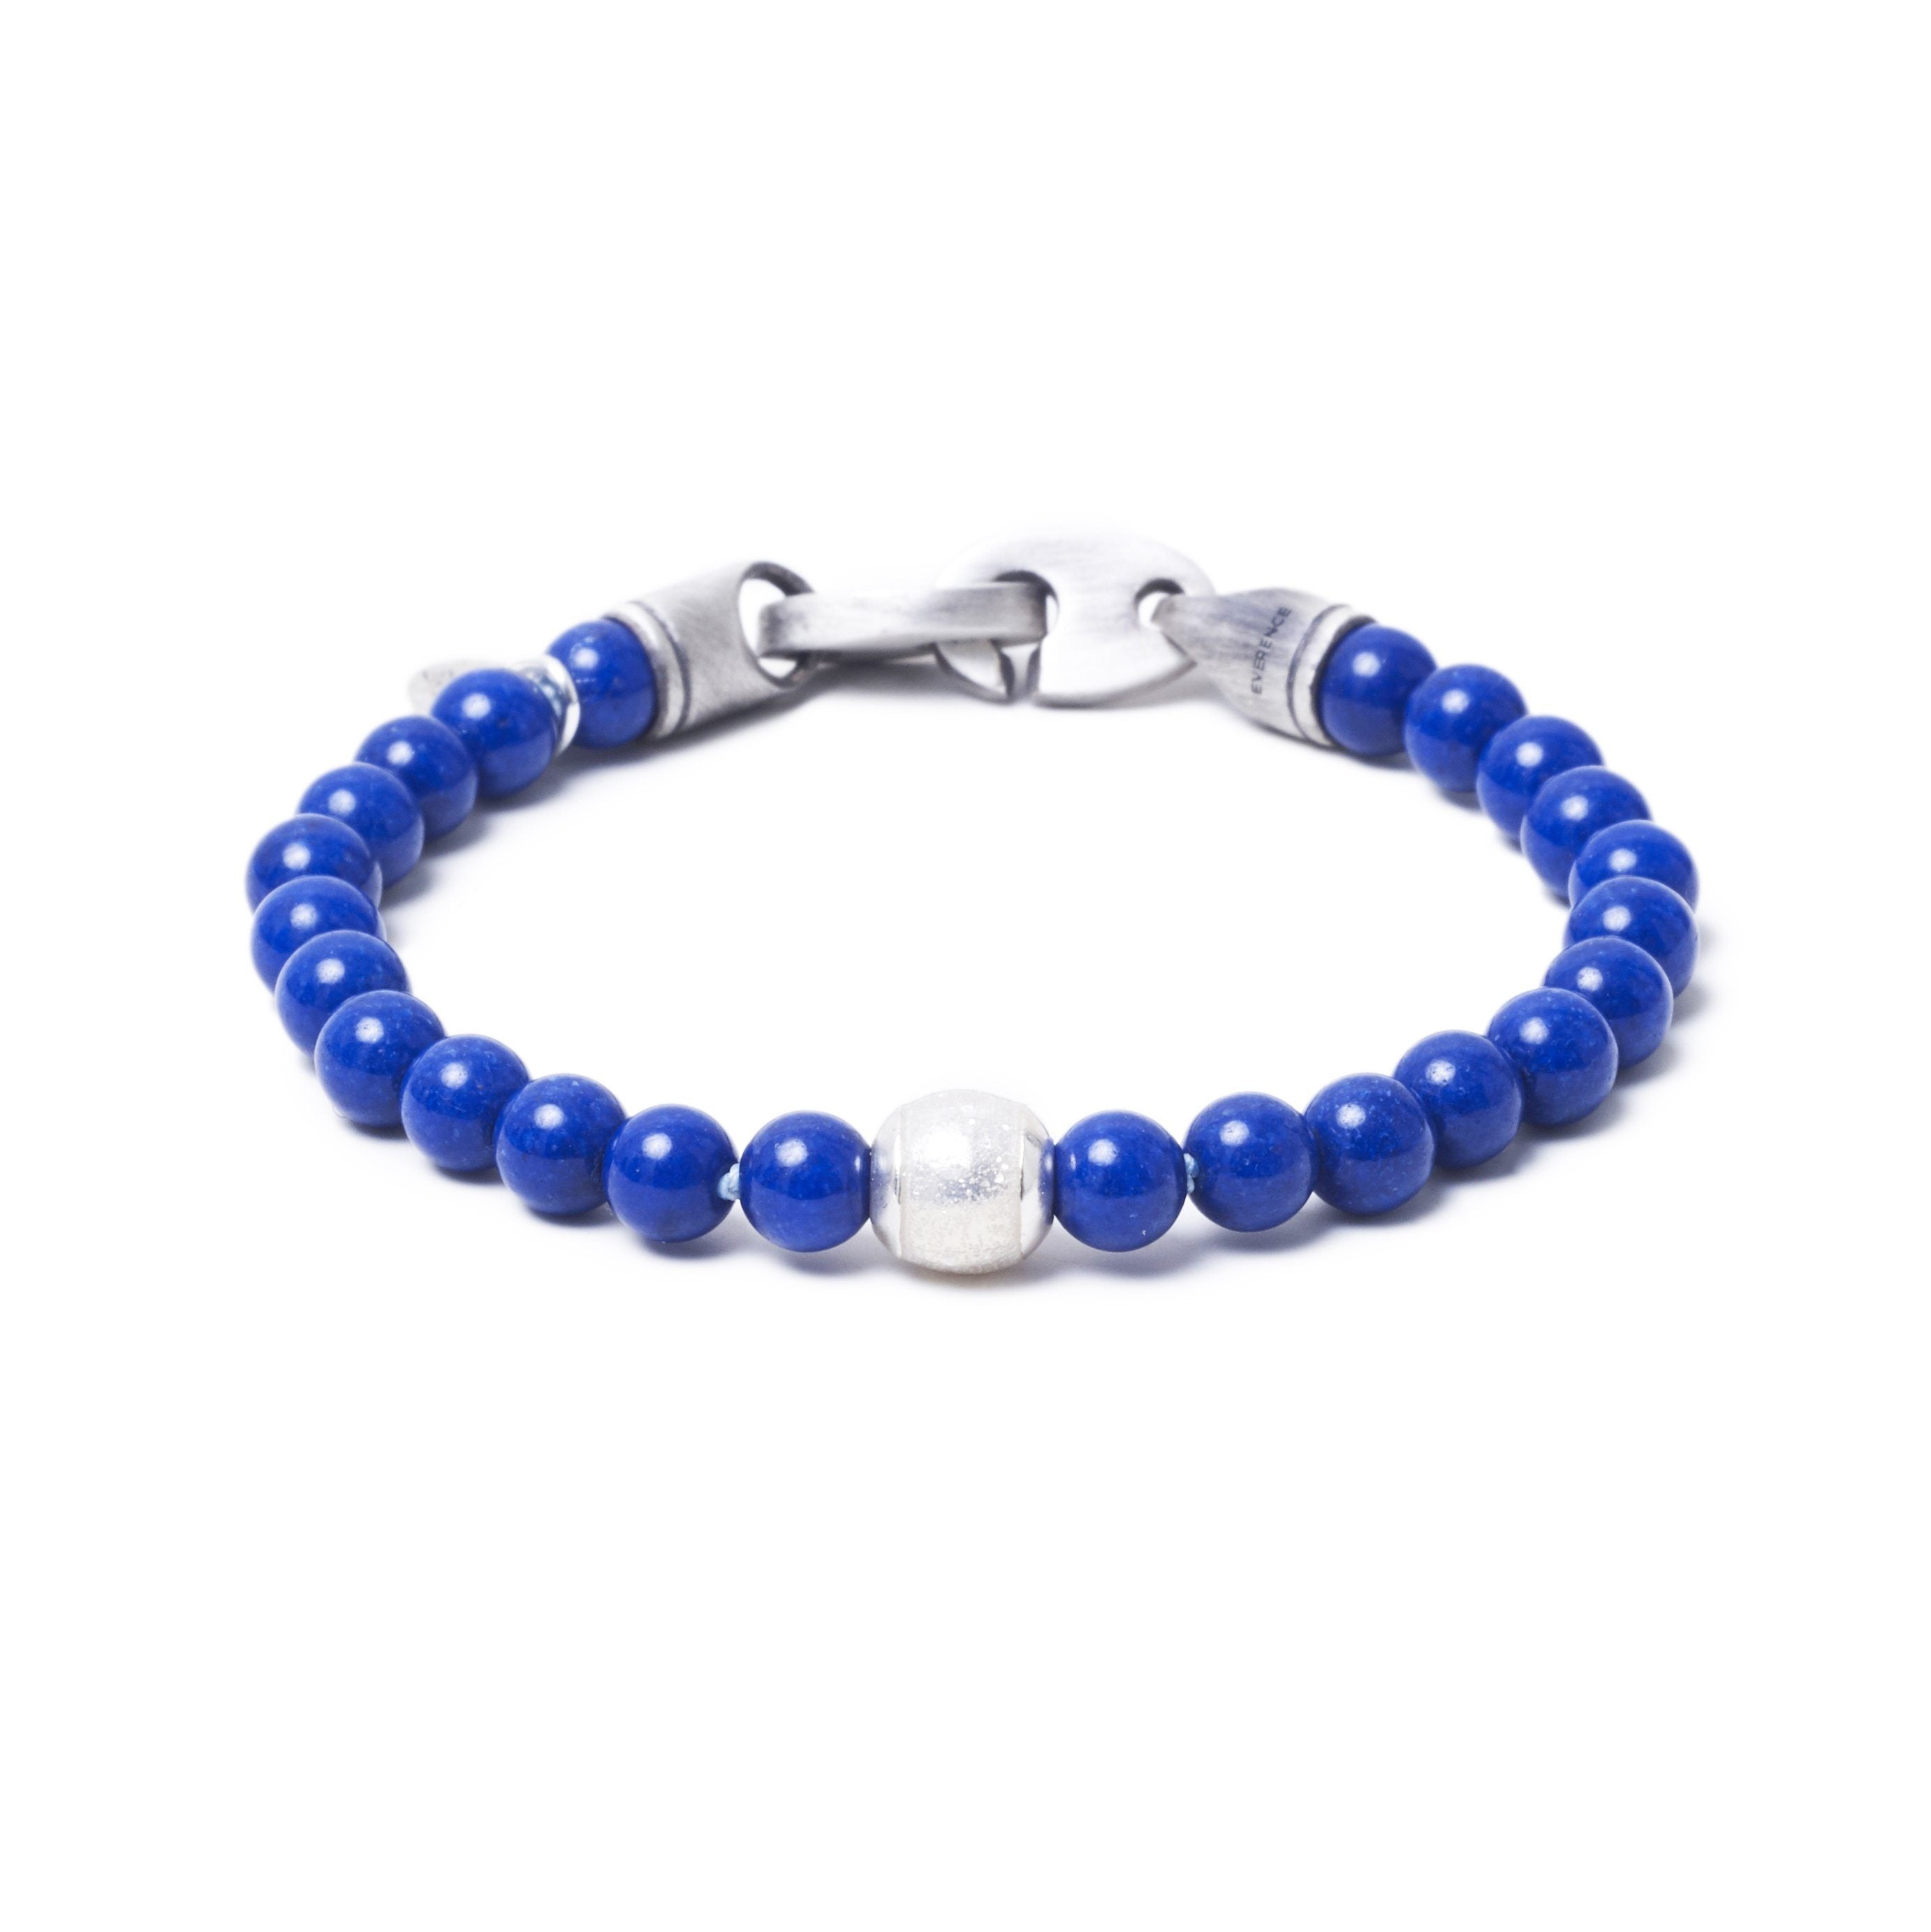 Lapis Lazuli, One Everence Bead everence.life